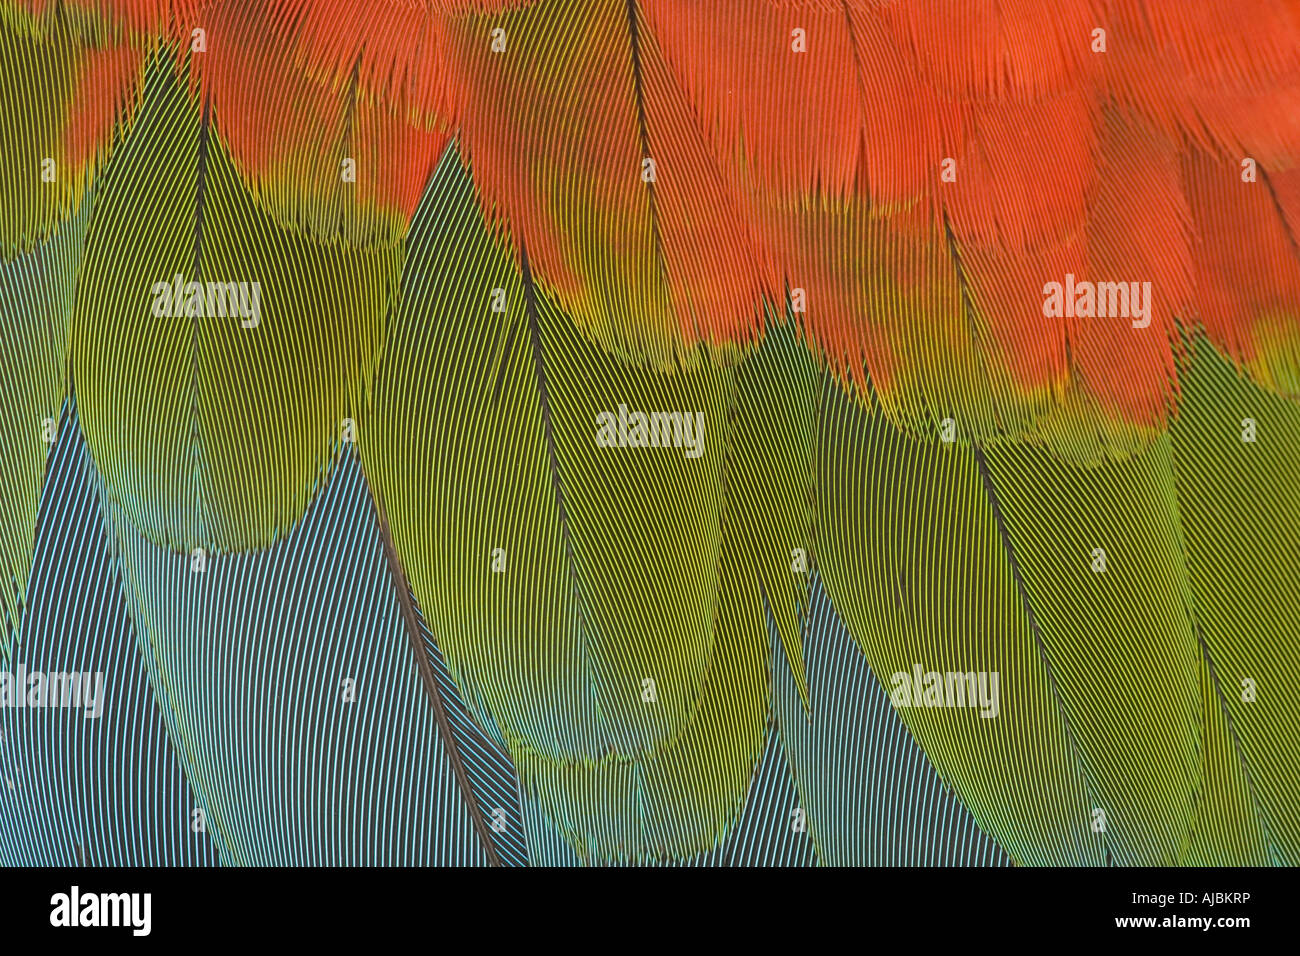 Extreme Close-up of the Wing of a Green-Winged Macaw (Ara chloroptera) - Stock Image